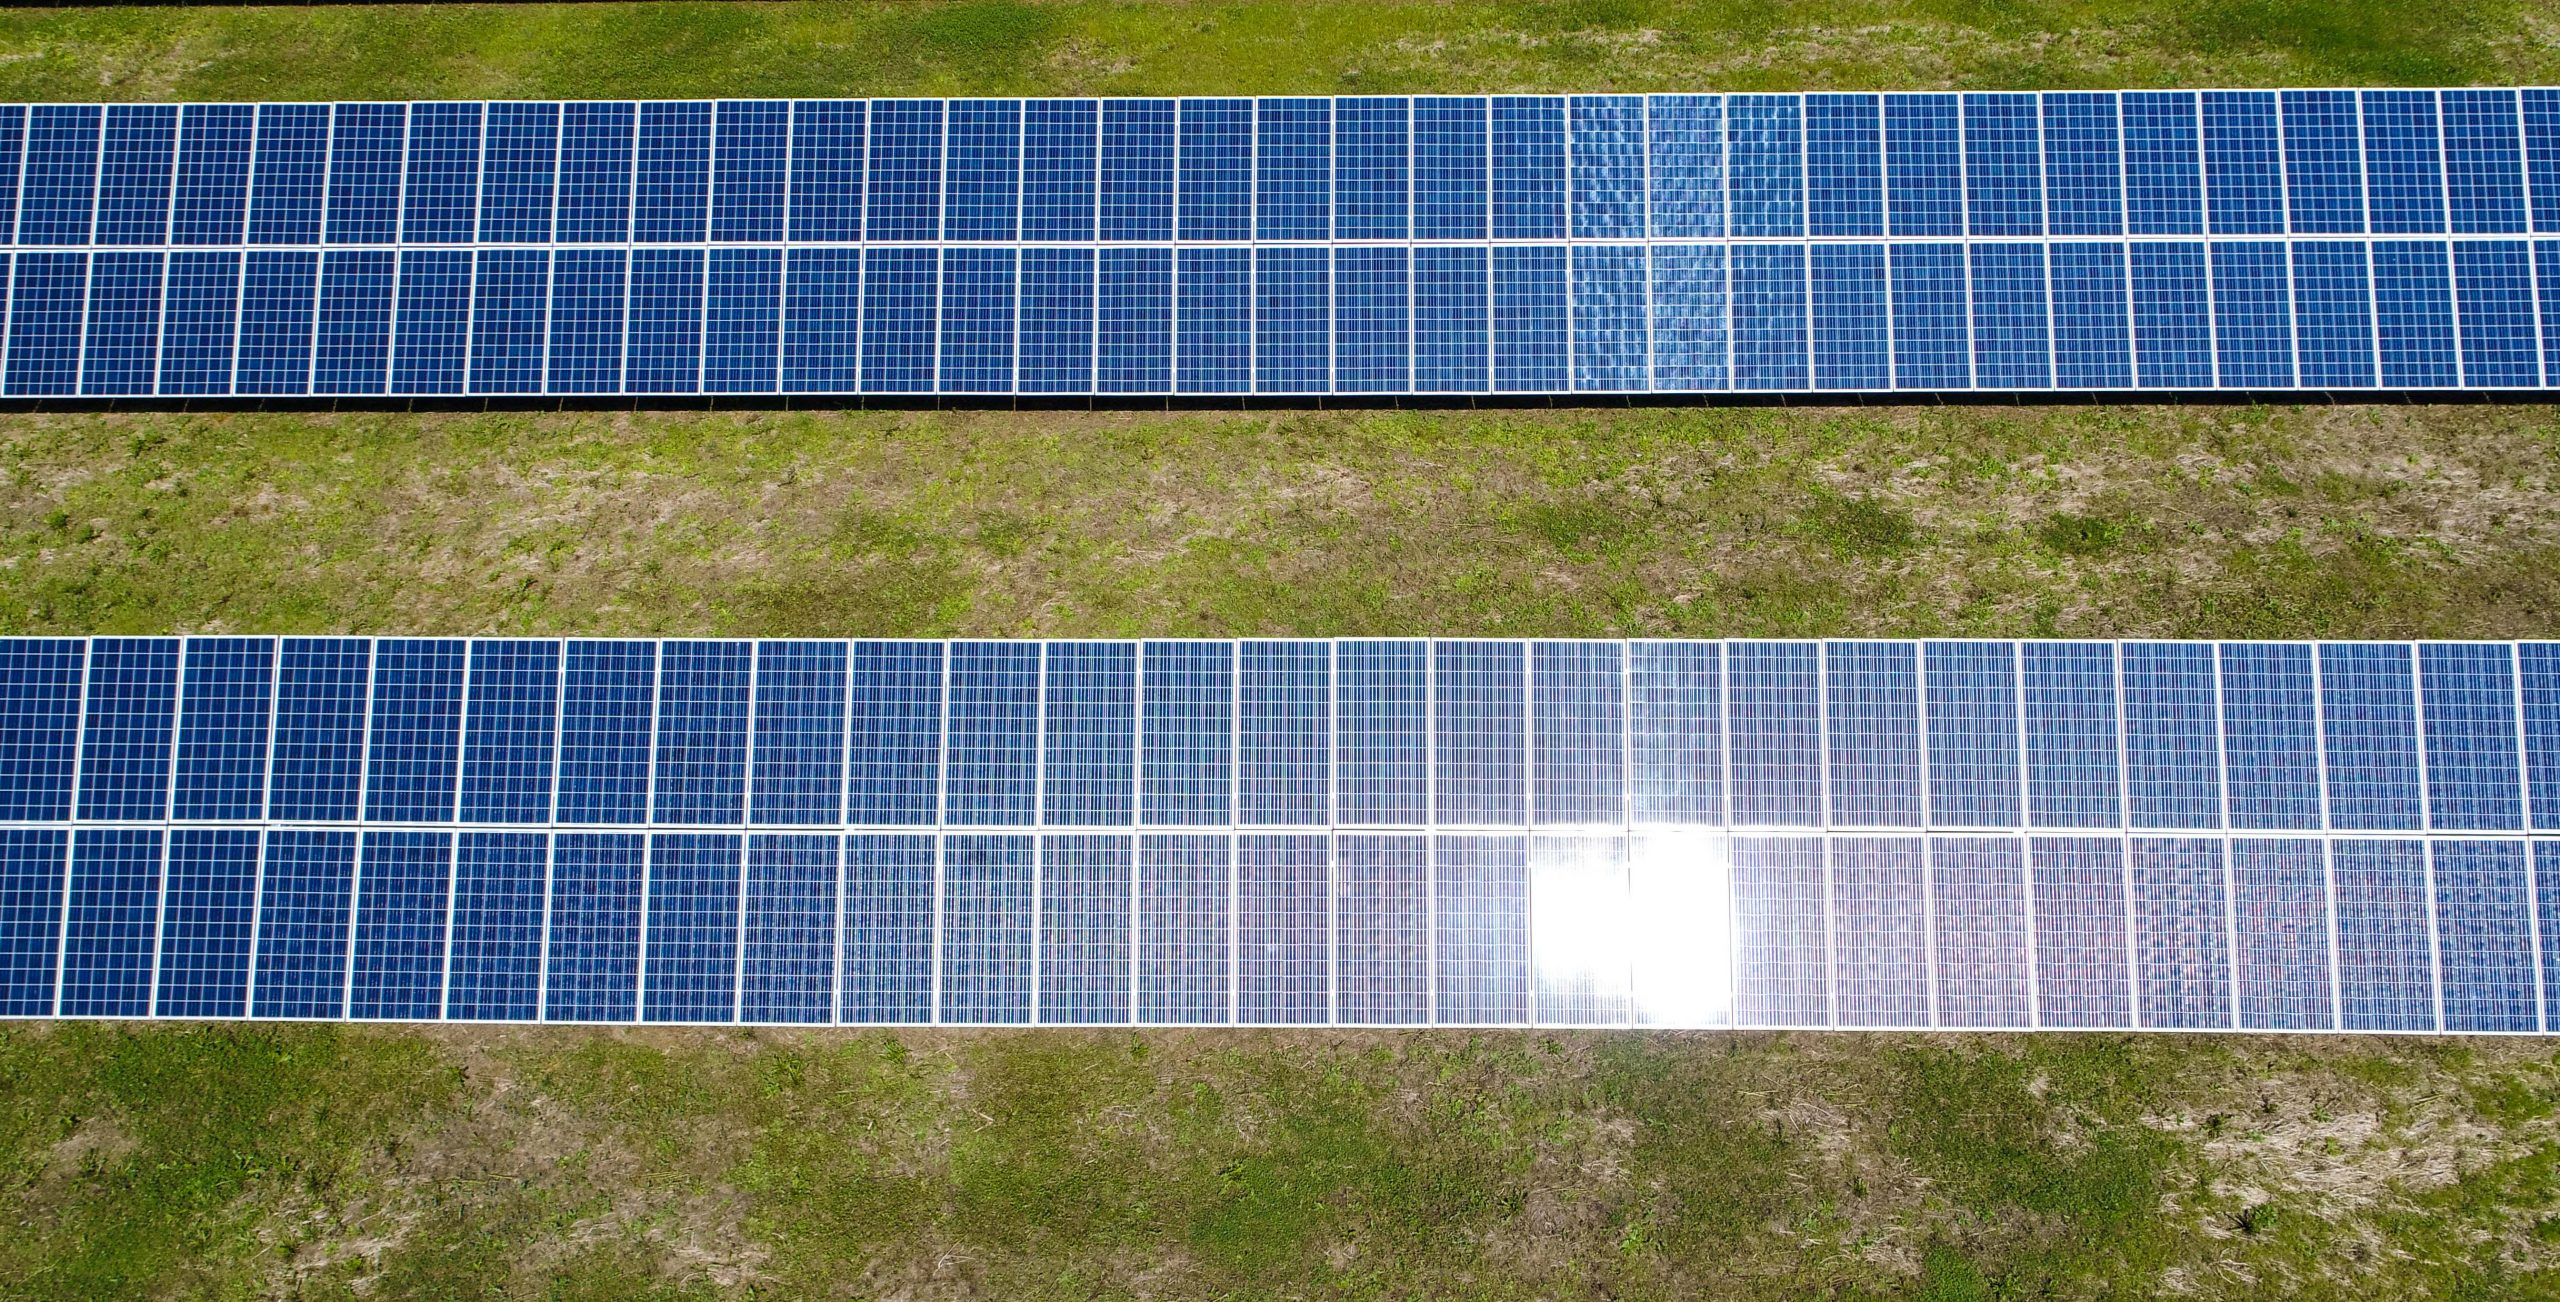 4 Reasons Why Your Business Should Go Solar for Tax Season: